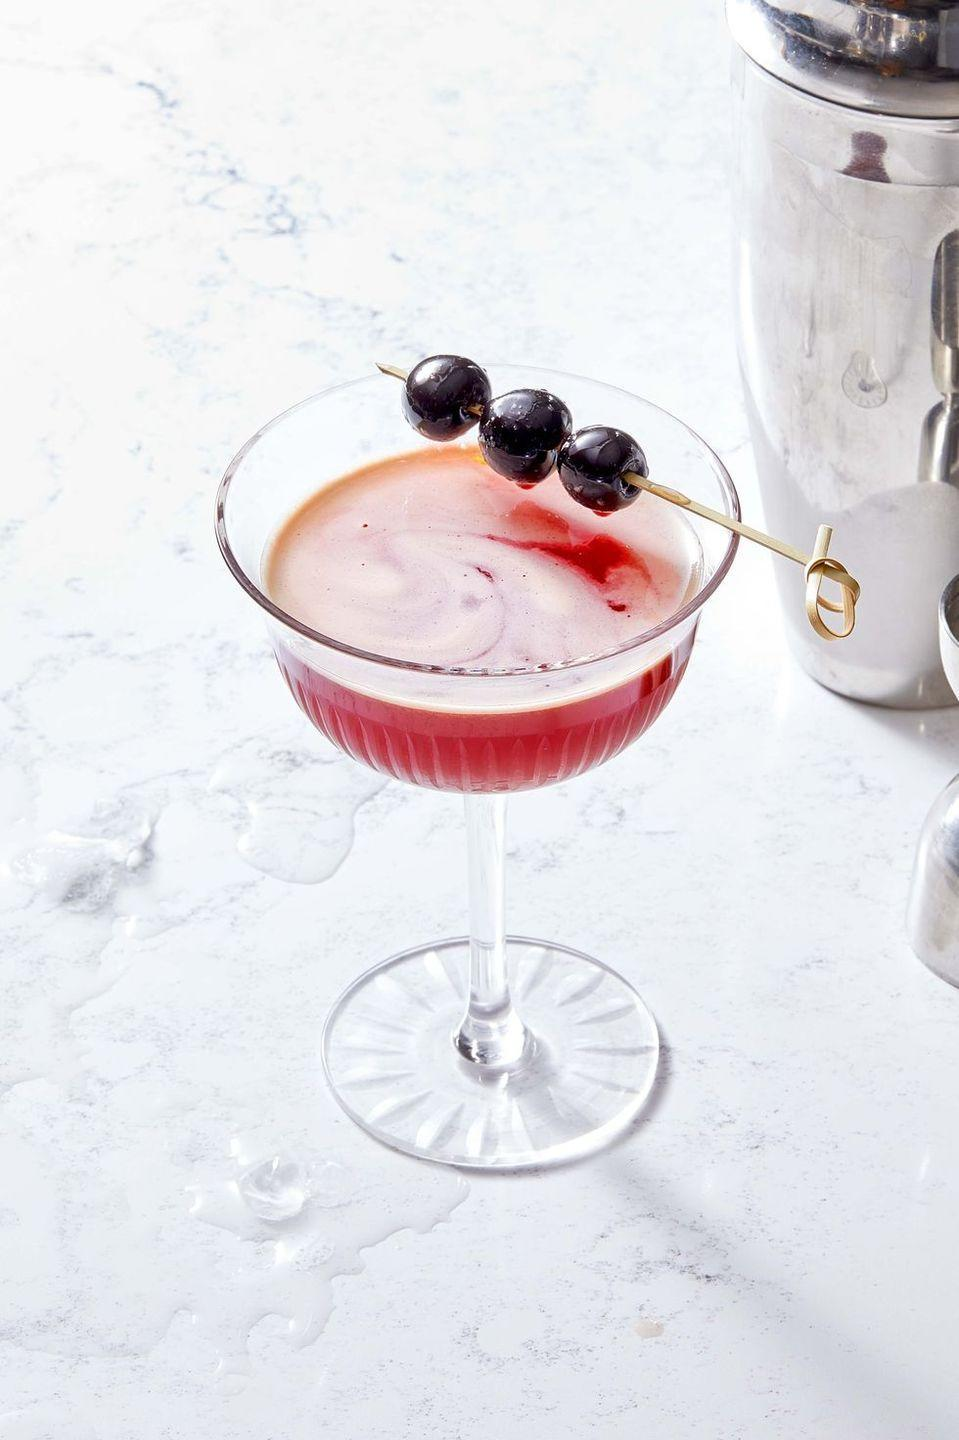 """<p>You'll become the sophisticate at the bar with this sweet and sour Halloween treat. The cherry liqueur makes this staple sensational.<br><br><em><a href=""""https://www.goodhousekeeping.com/food-recipes/a36890272/cherry-sidecar-recipe/"""" rel=""""nofollow noopener"""" target=""""_blank"""" data-ylk=""""slk:Get the recipe for Cherry Sidecar »"""" class=""""link rapid-noclick-resp"""">Get the recipe for Cherry Sidecar »</a></em><br></p>"""